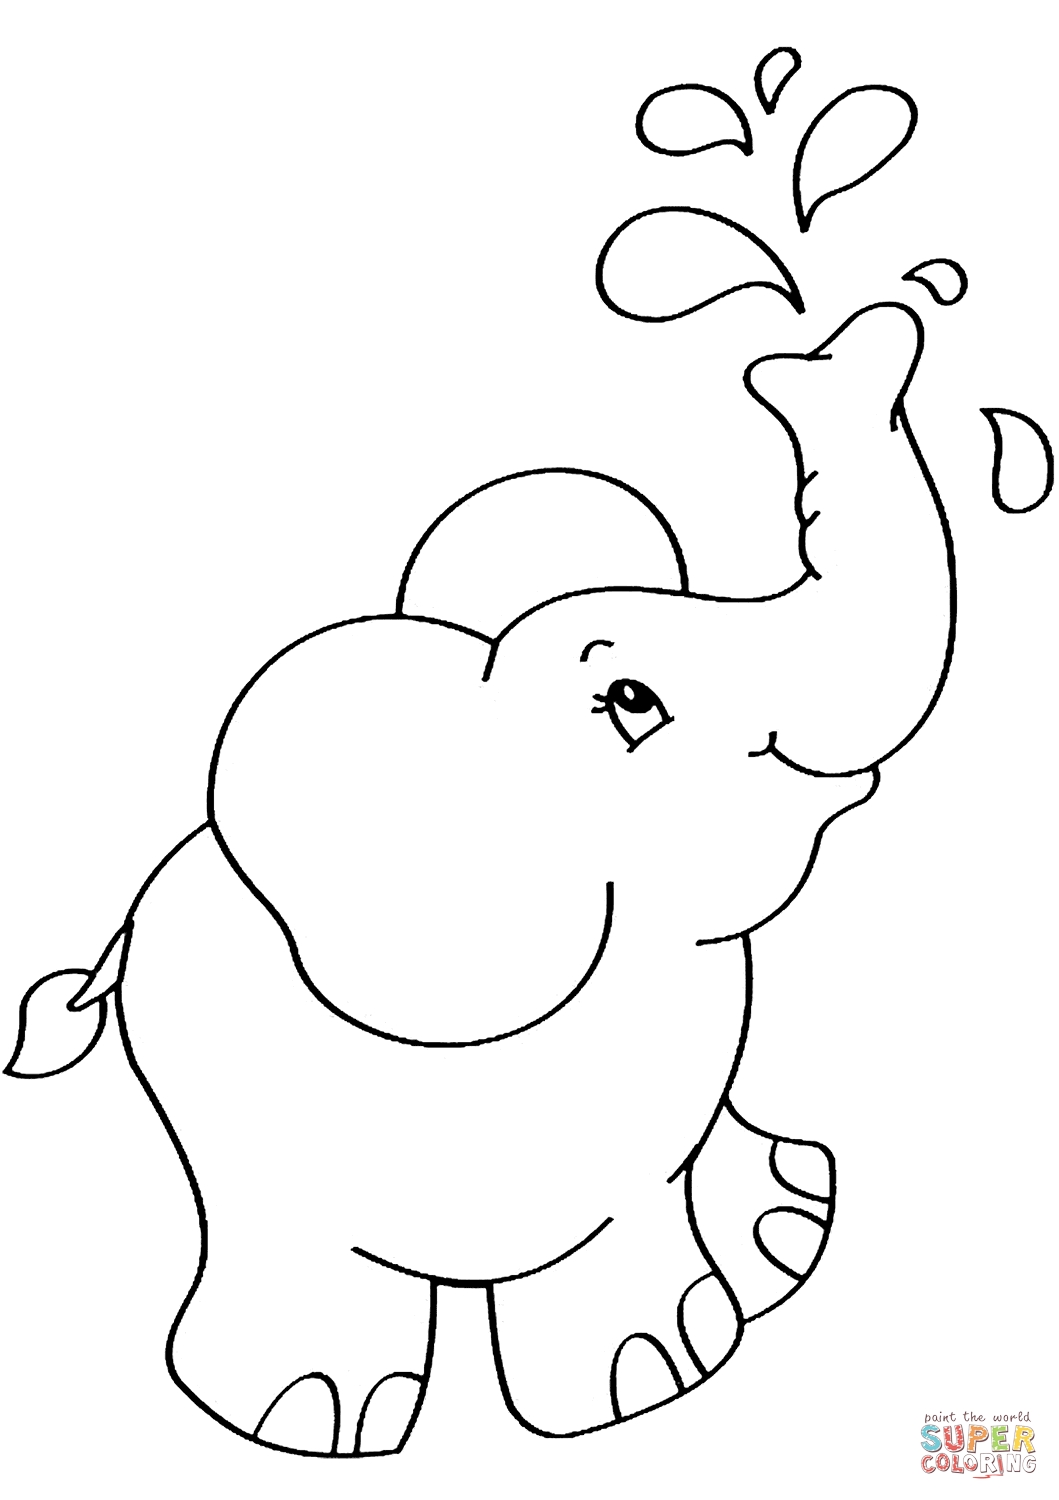 Cartoon Elephant  Super Coloring  Elephant coloring page